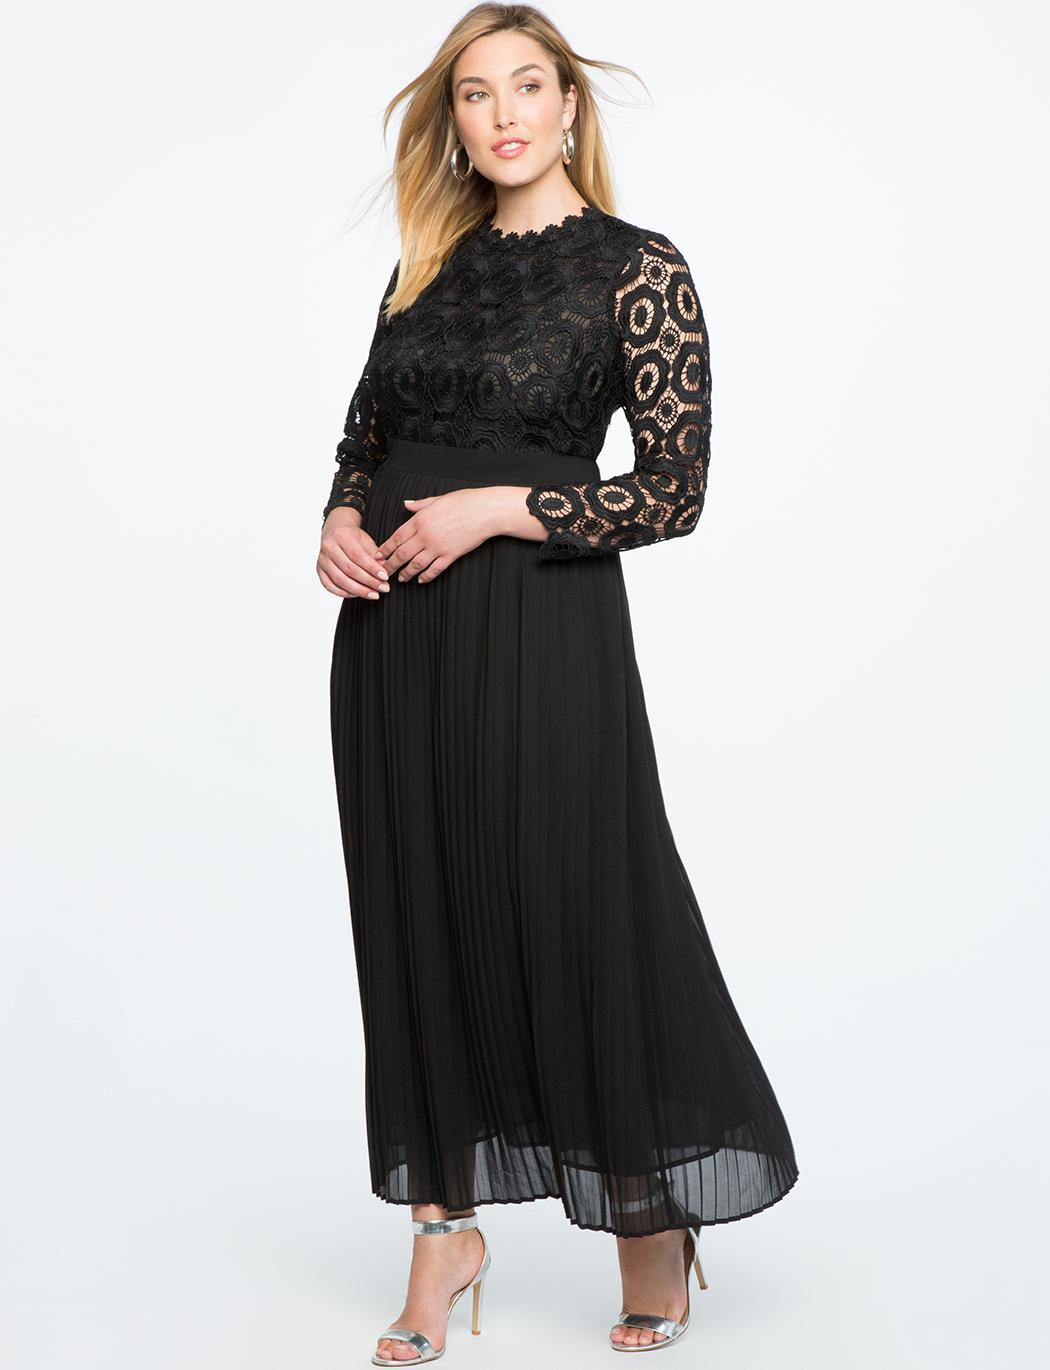 Lyst - Eloquii Lace Evening Dress With Pleated Skirt in Black